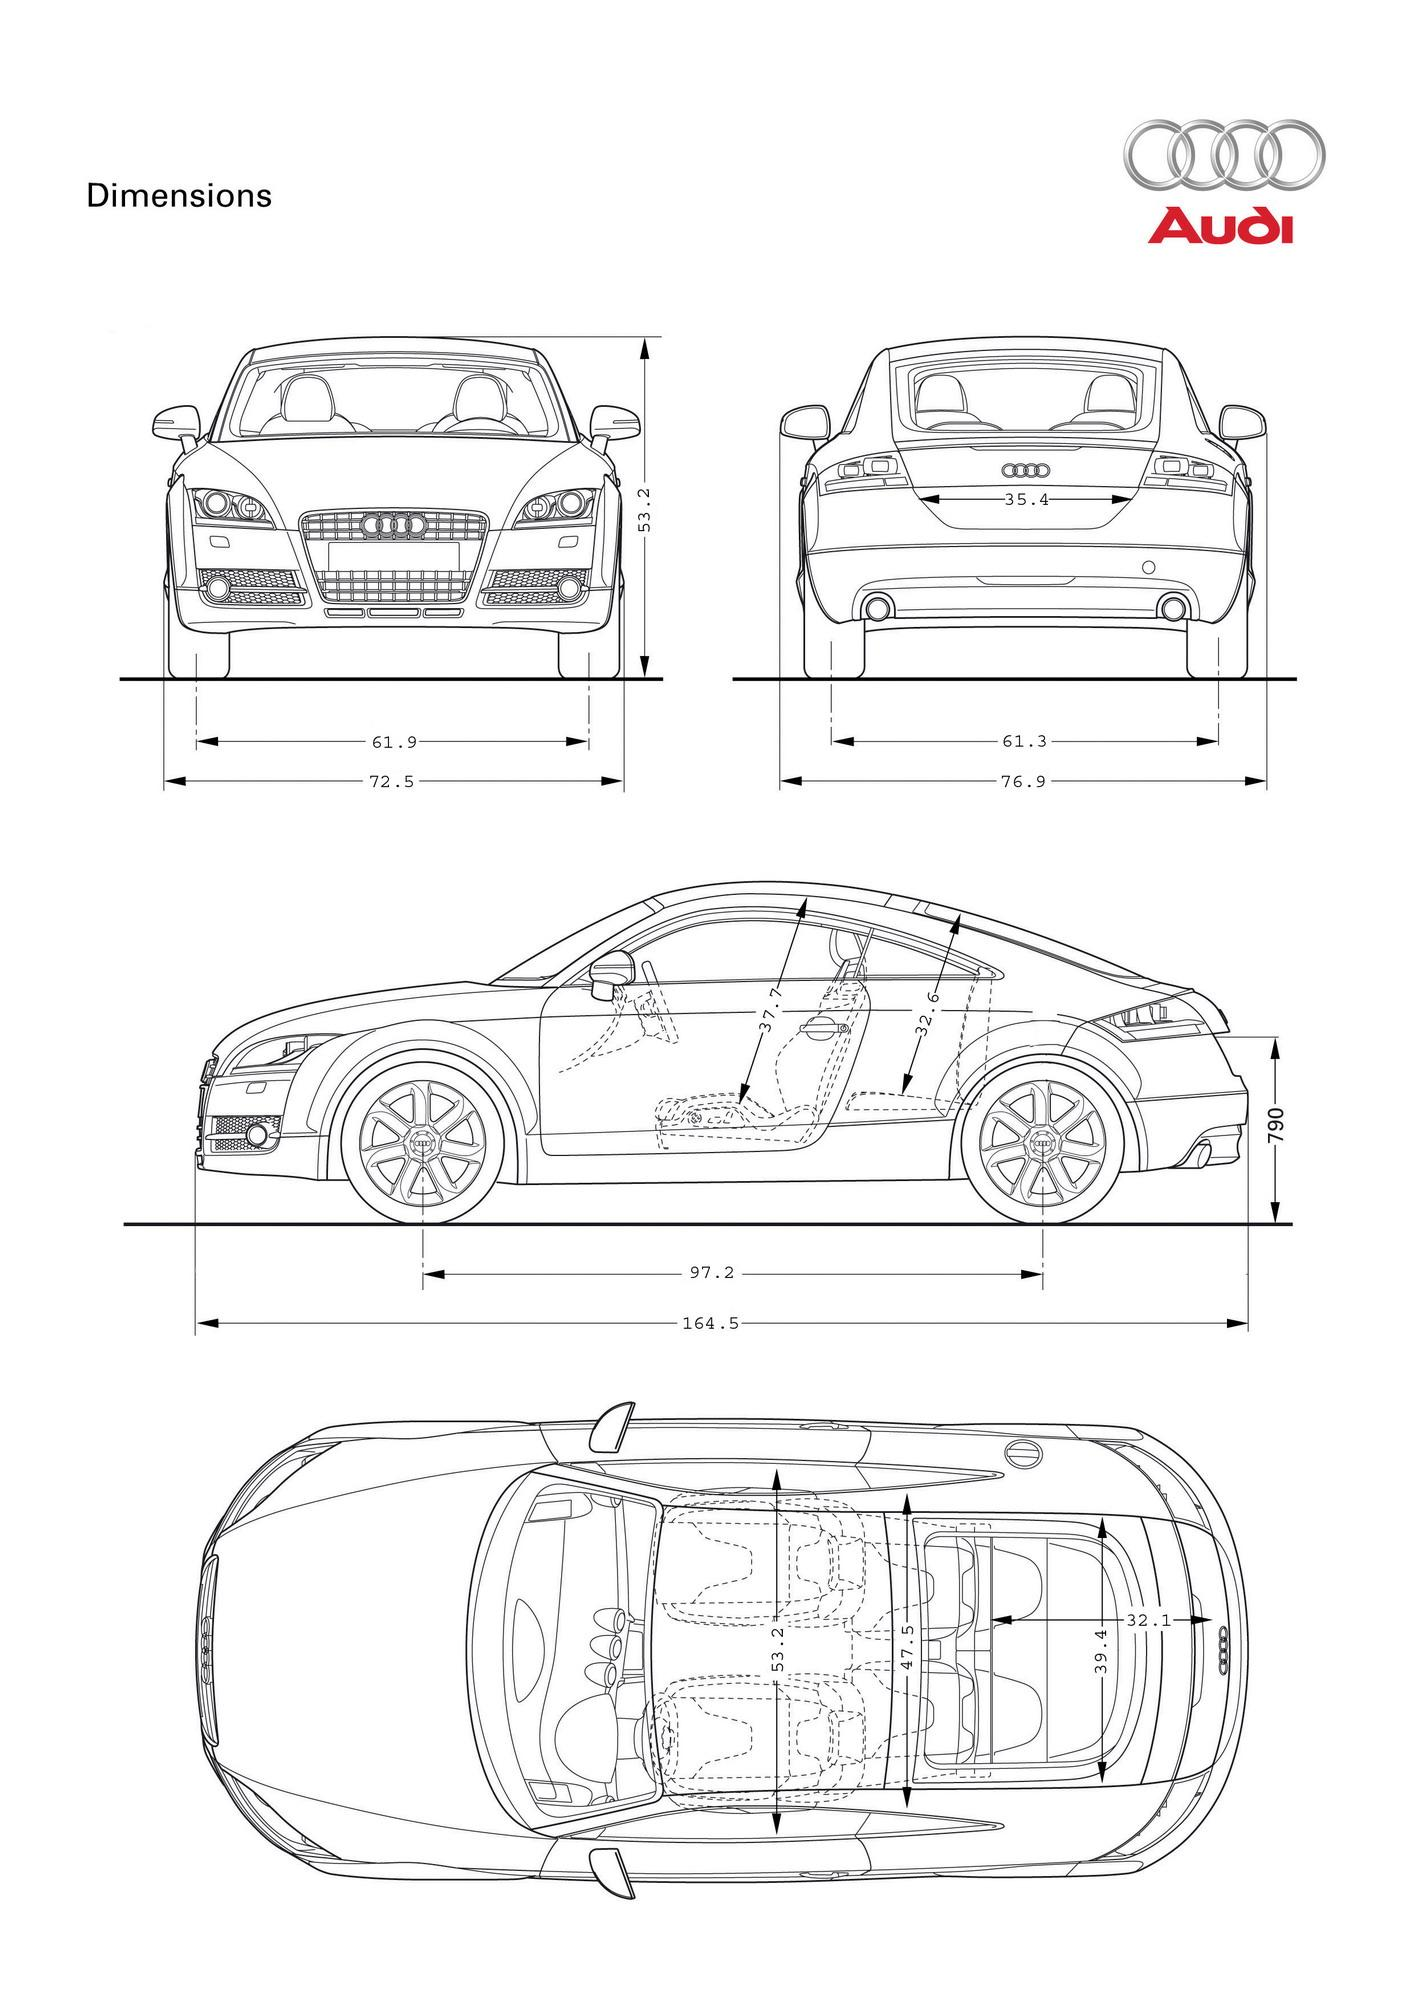 2010 Audi Tt Top Speed A8 Engine Diagram